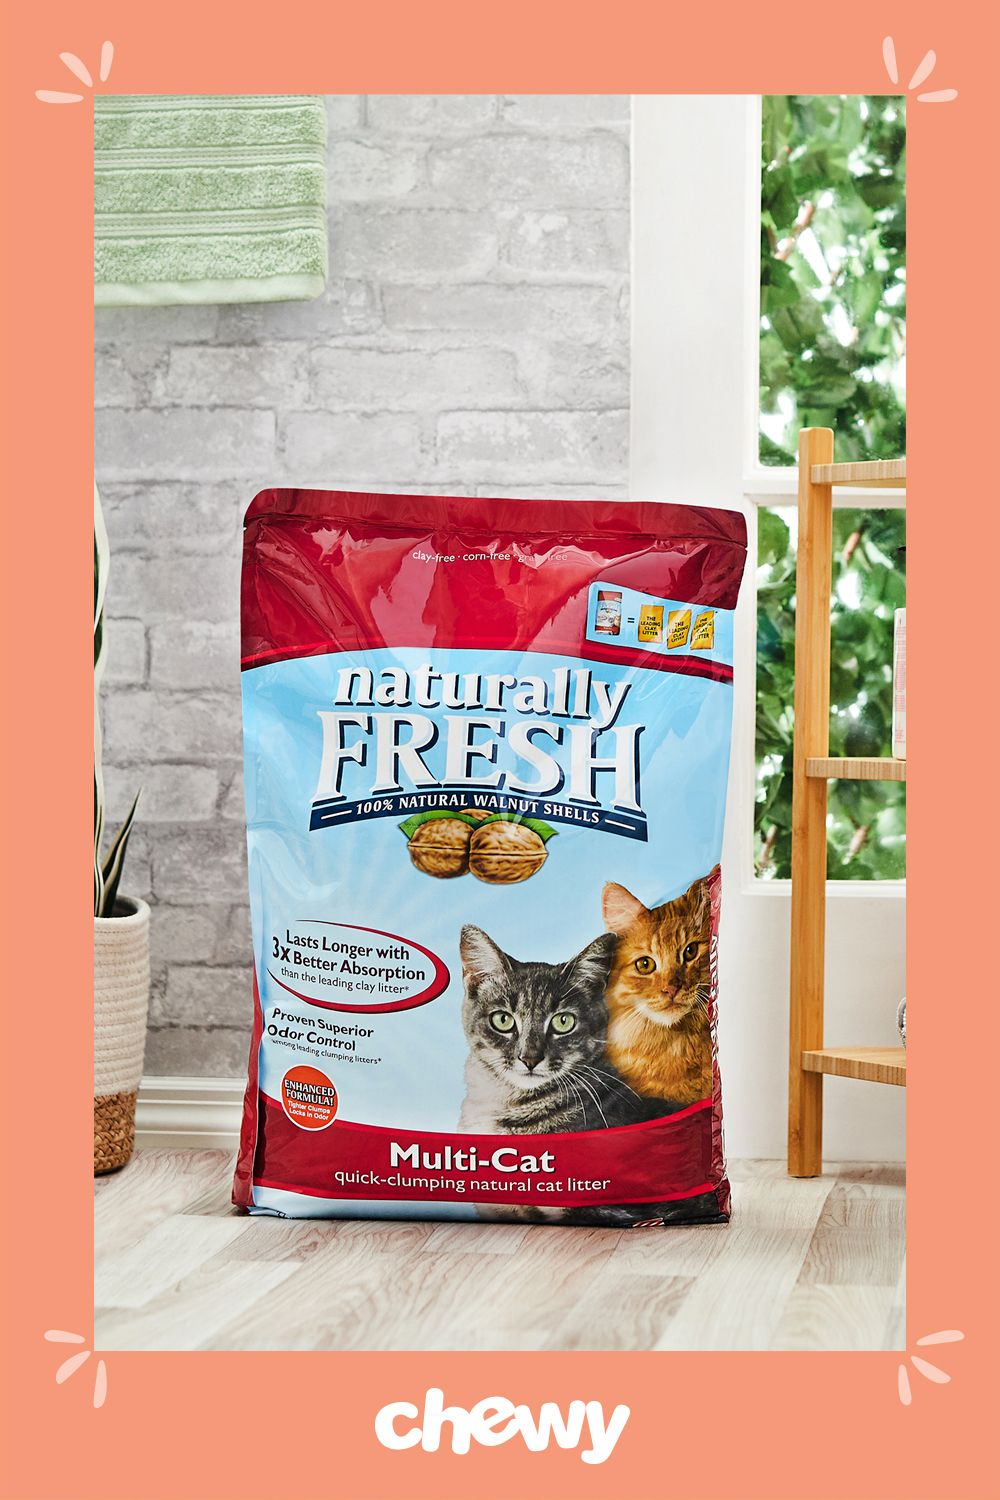 Say goodbye to that stinky litter box and hello to great